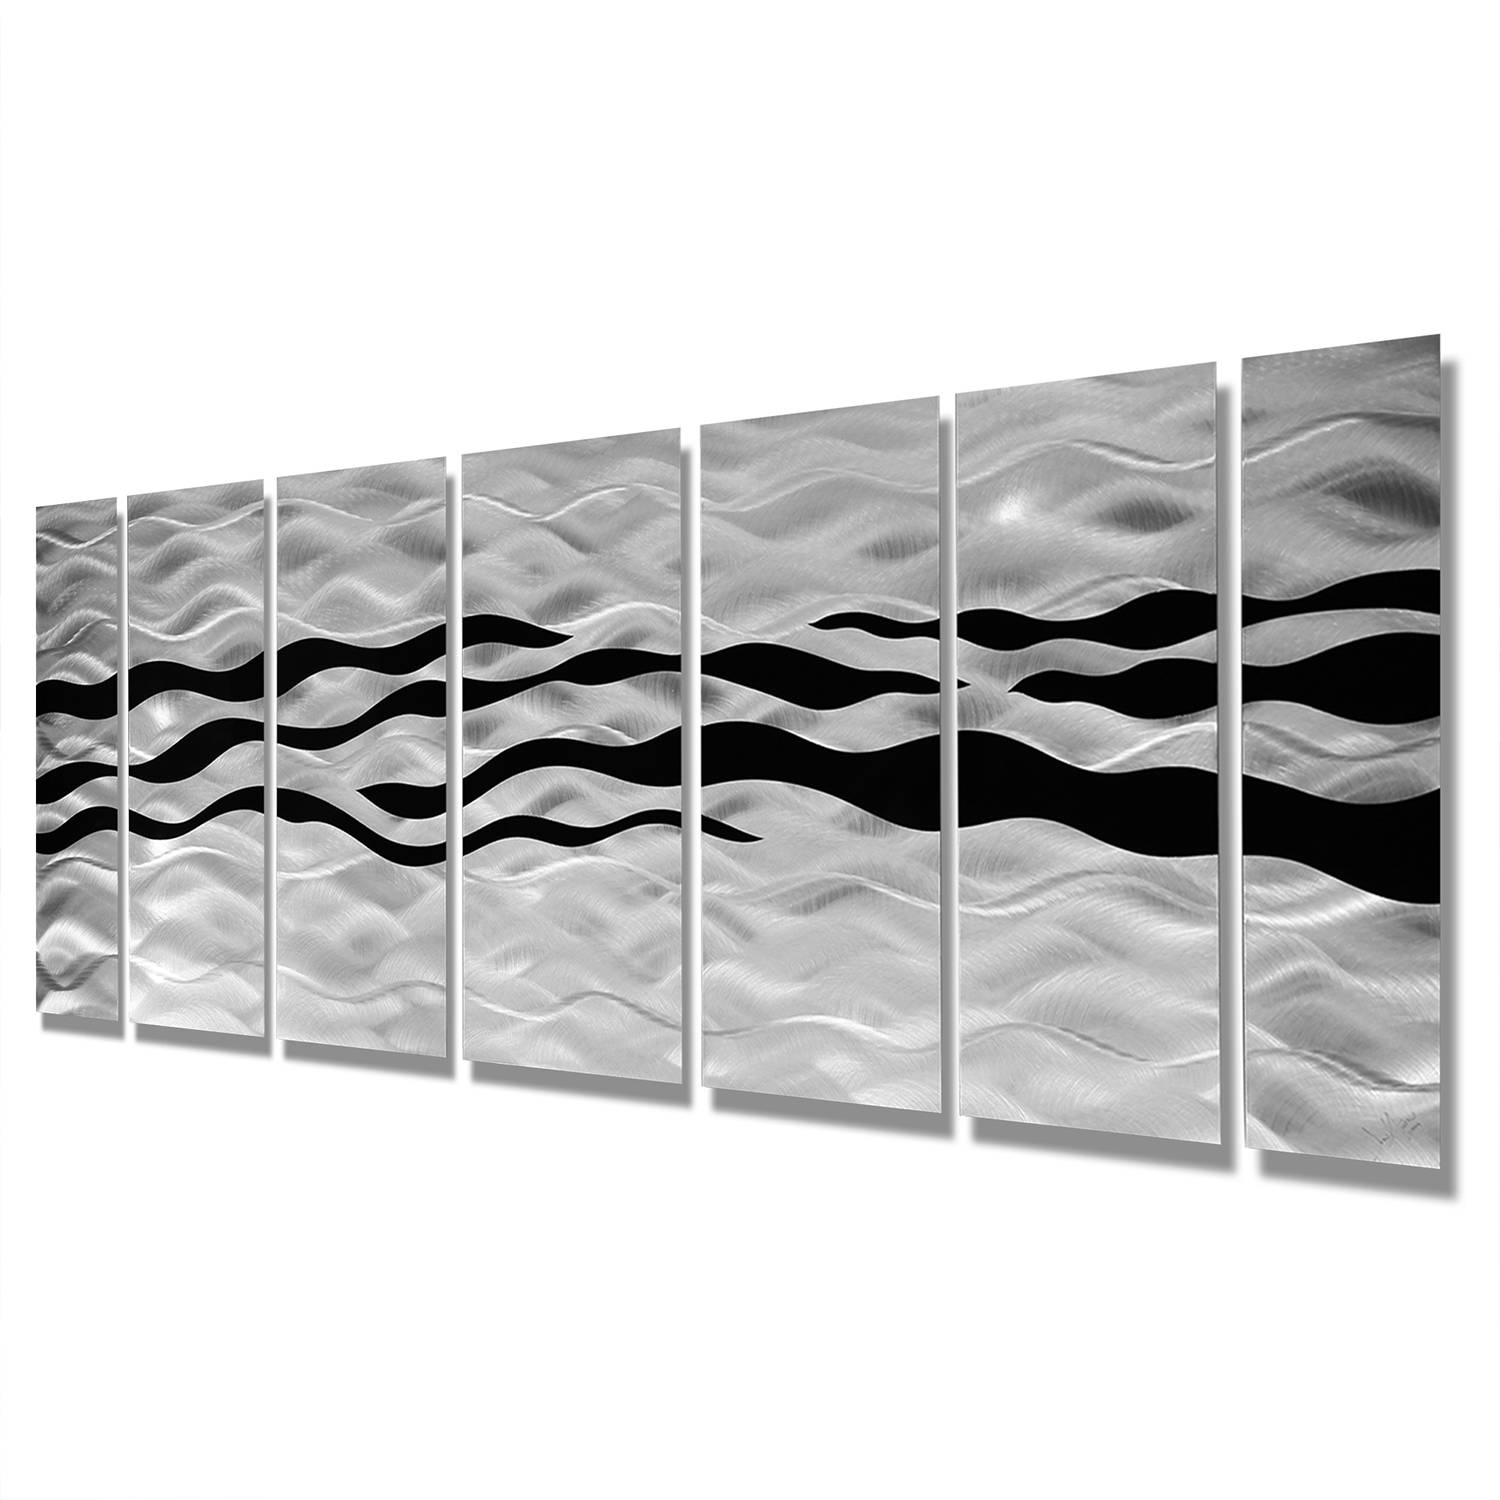 Wild Ways – Silver And Black Modern Metallic Wall Hanging In Best And Newest Black Silver Wall Art (View 16 of 20)